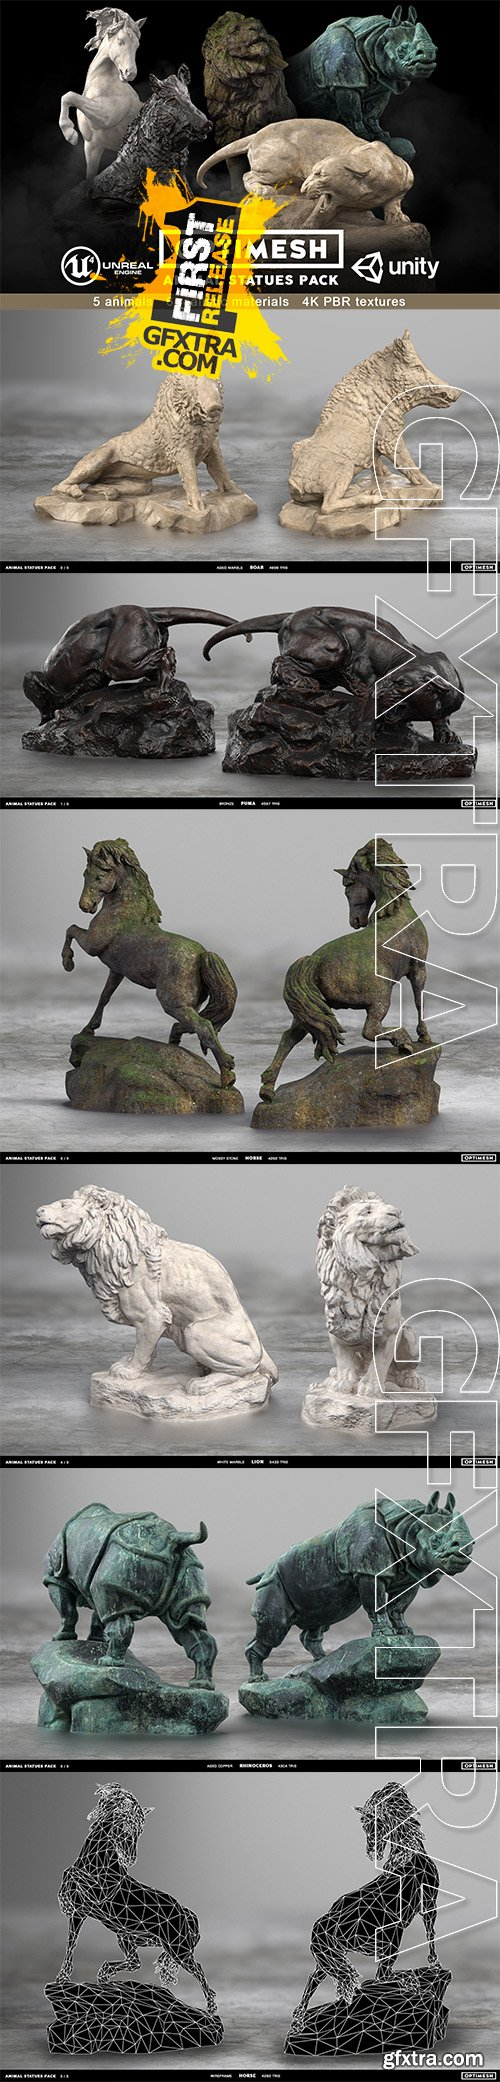 Cgtrader - Animal Statues 3D PBR Pack lion puma rhino boar horse Low-poly 3D model